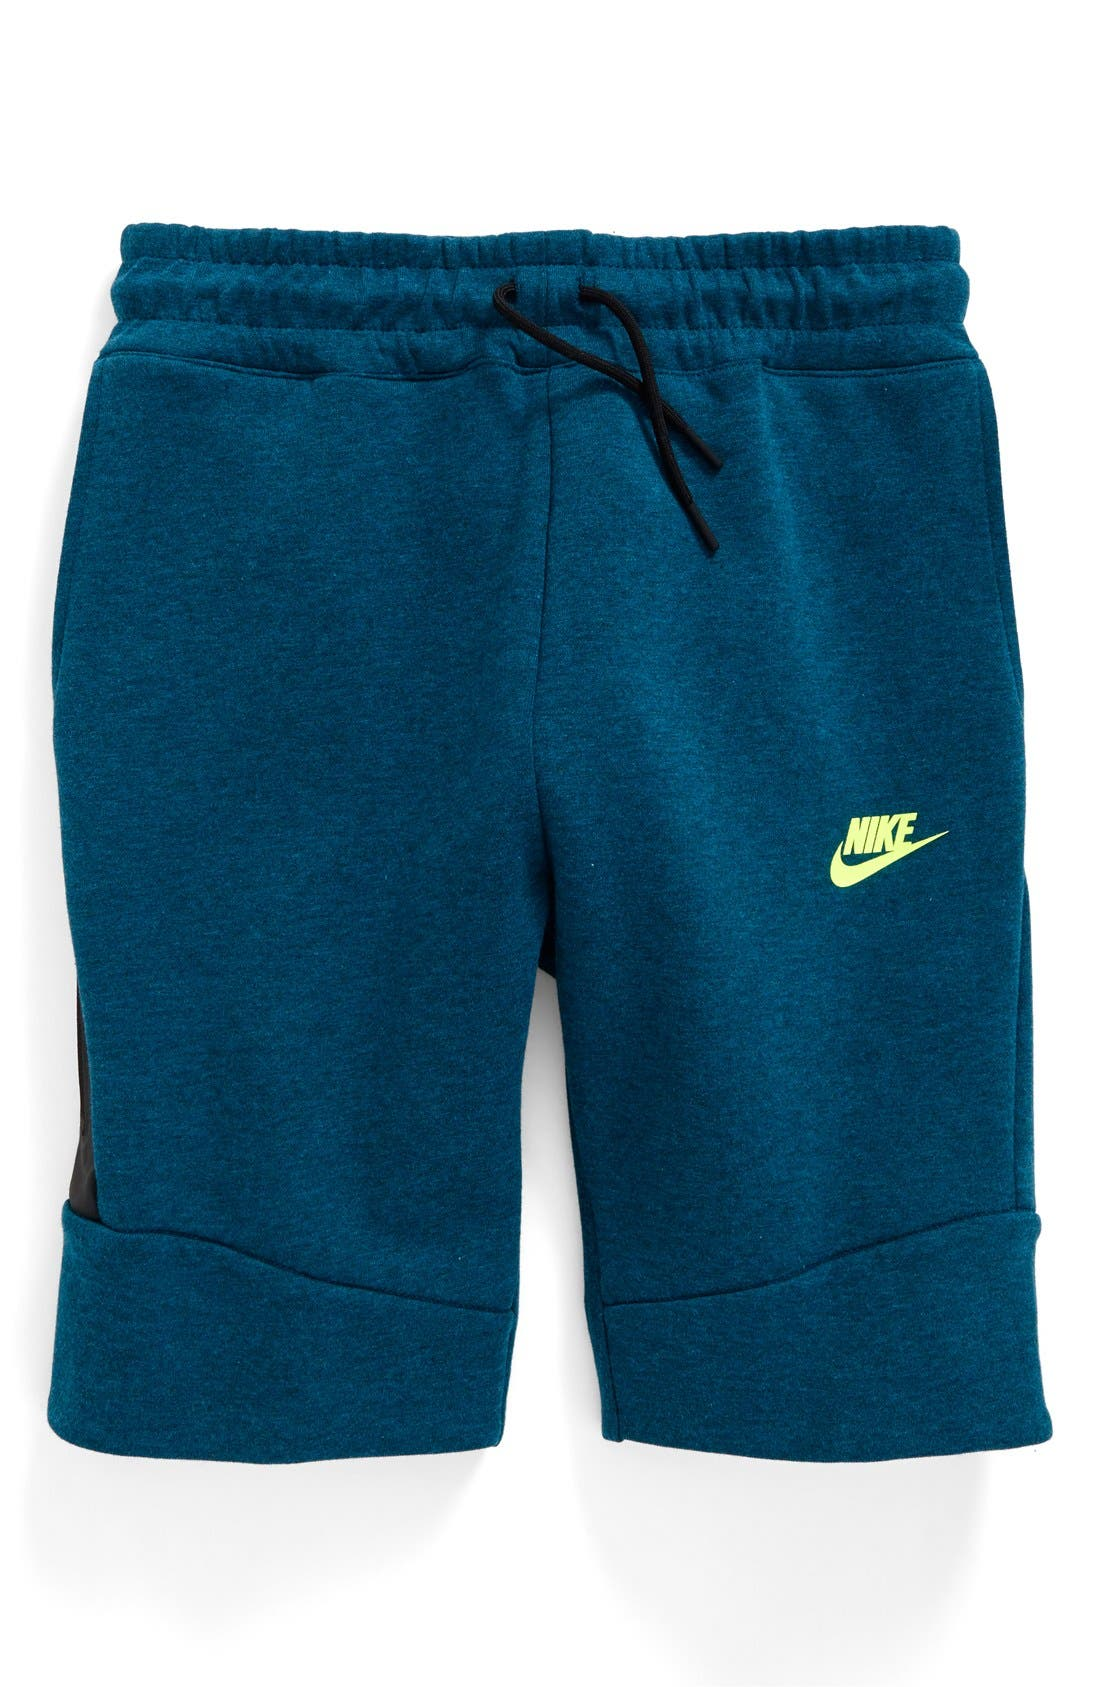 Shop Men's Nike Shorts Fleece Shorts at Champs Sports.